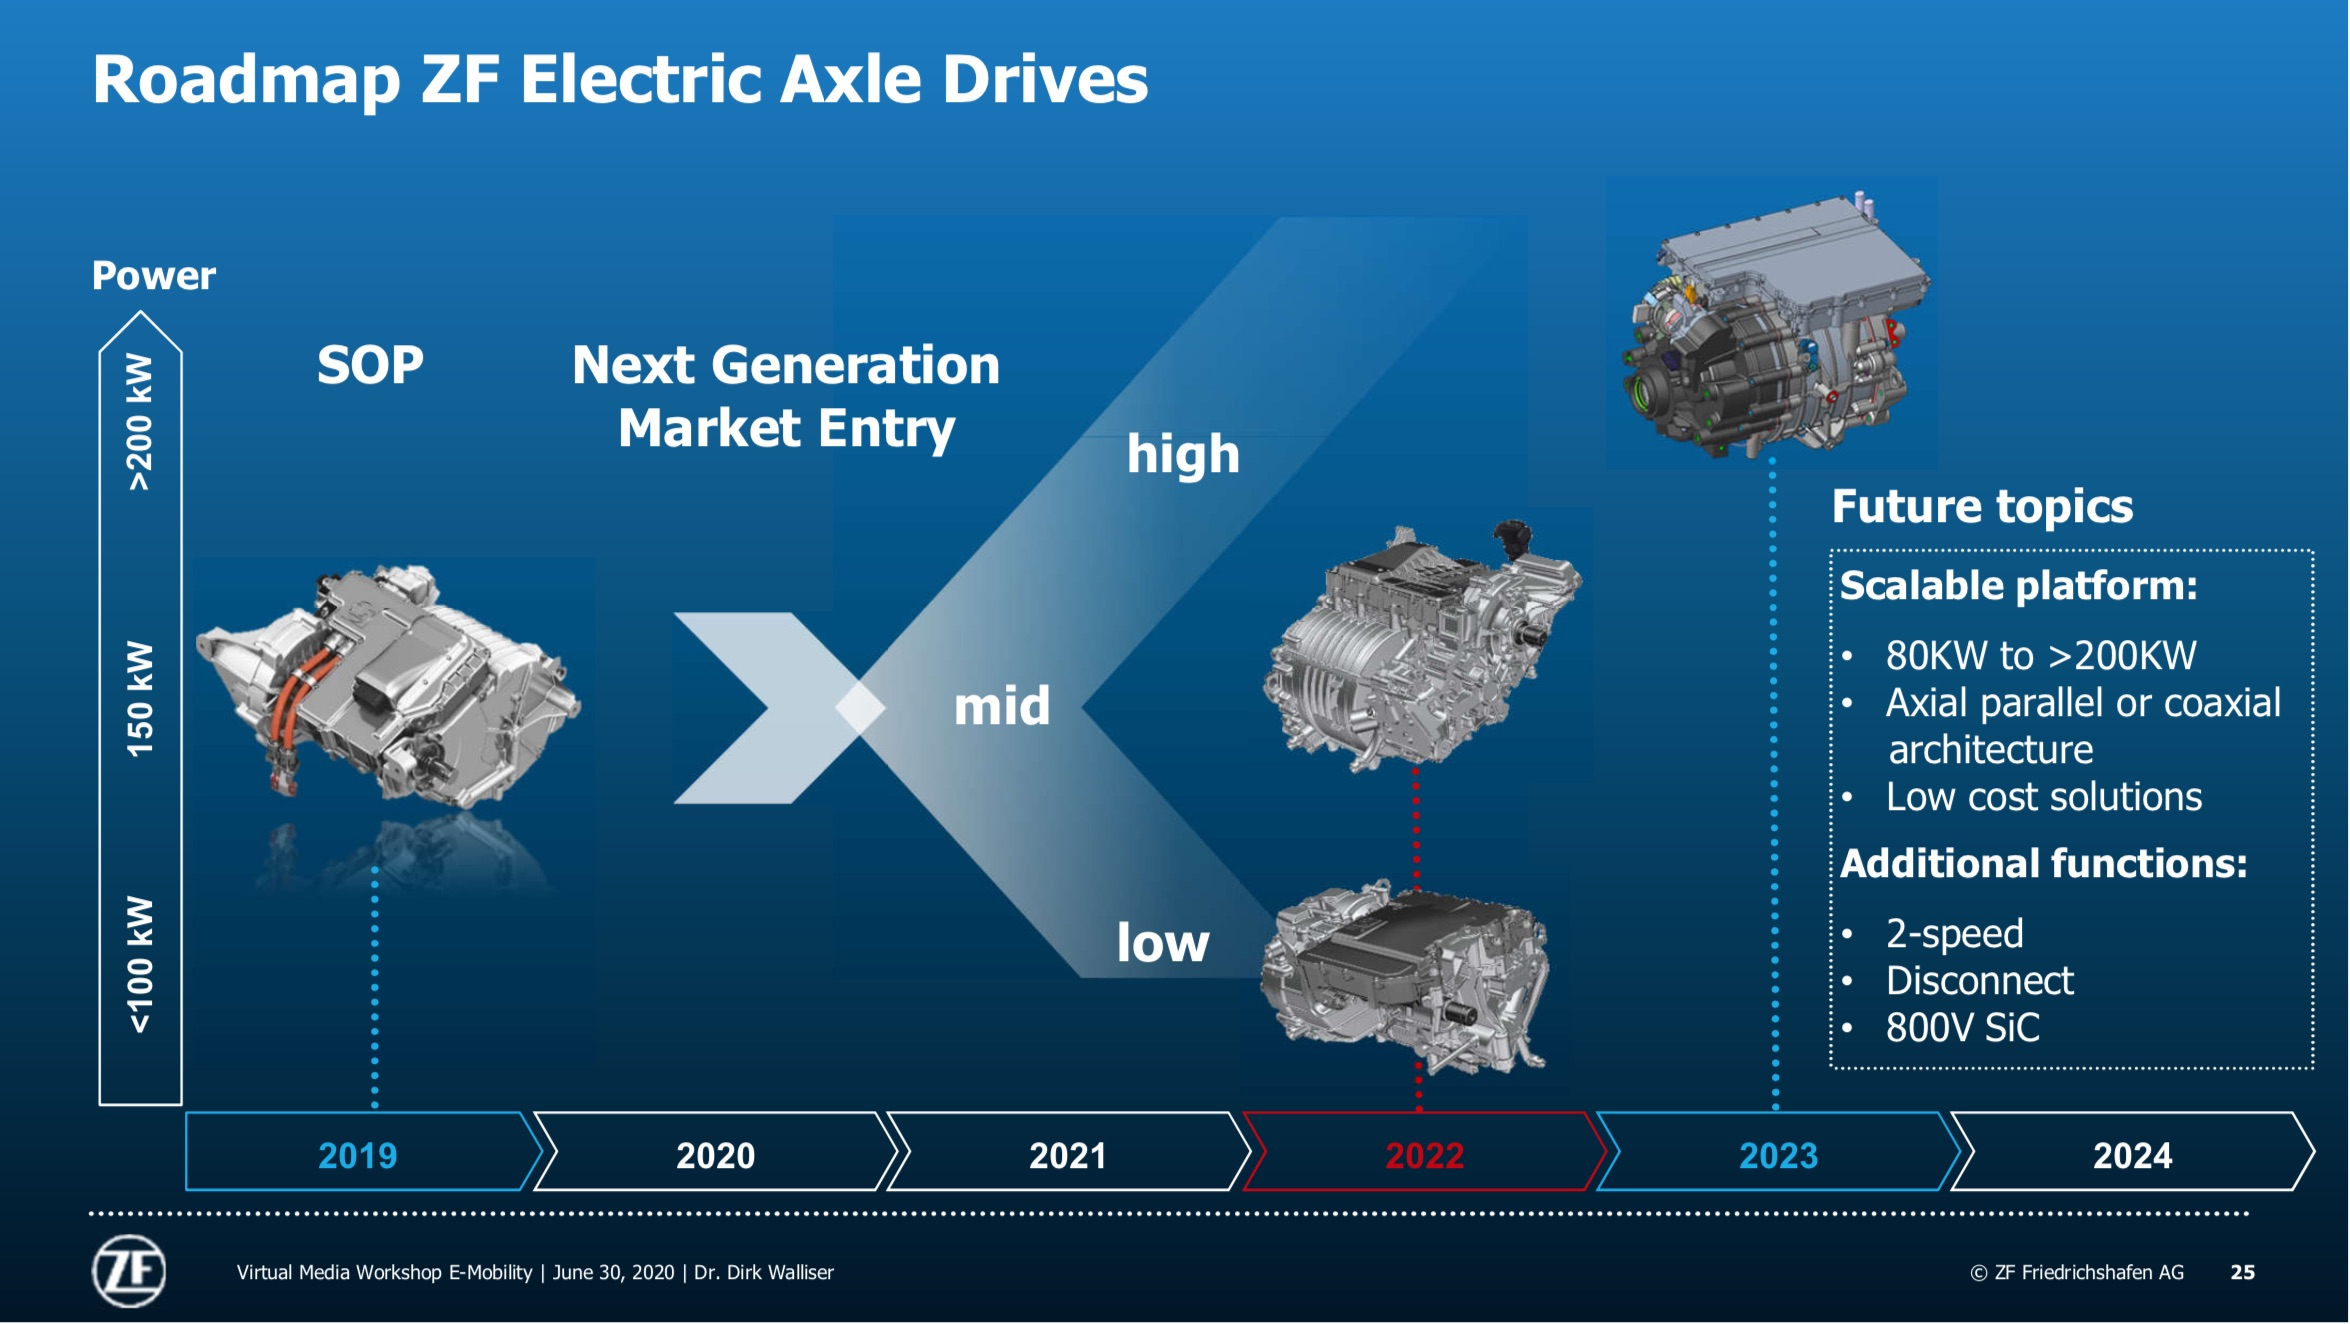 Crisis speeds transition to electromobility, says ZF